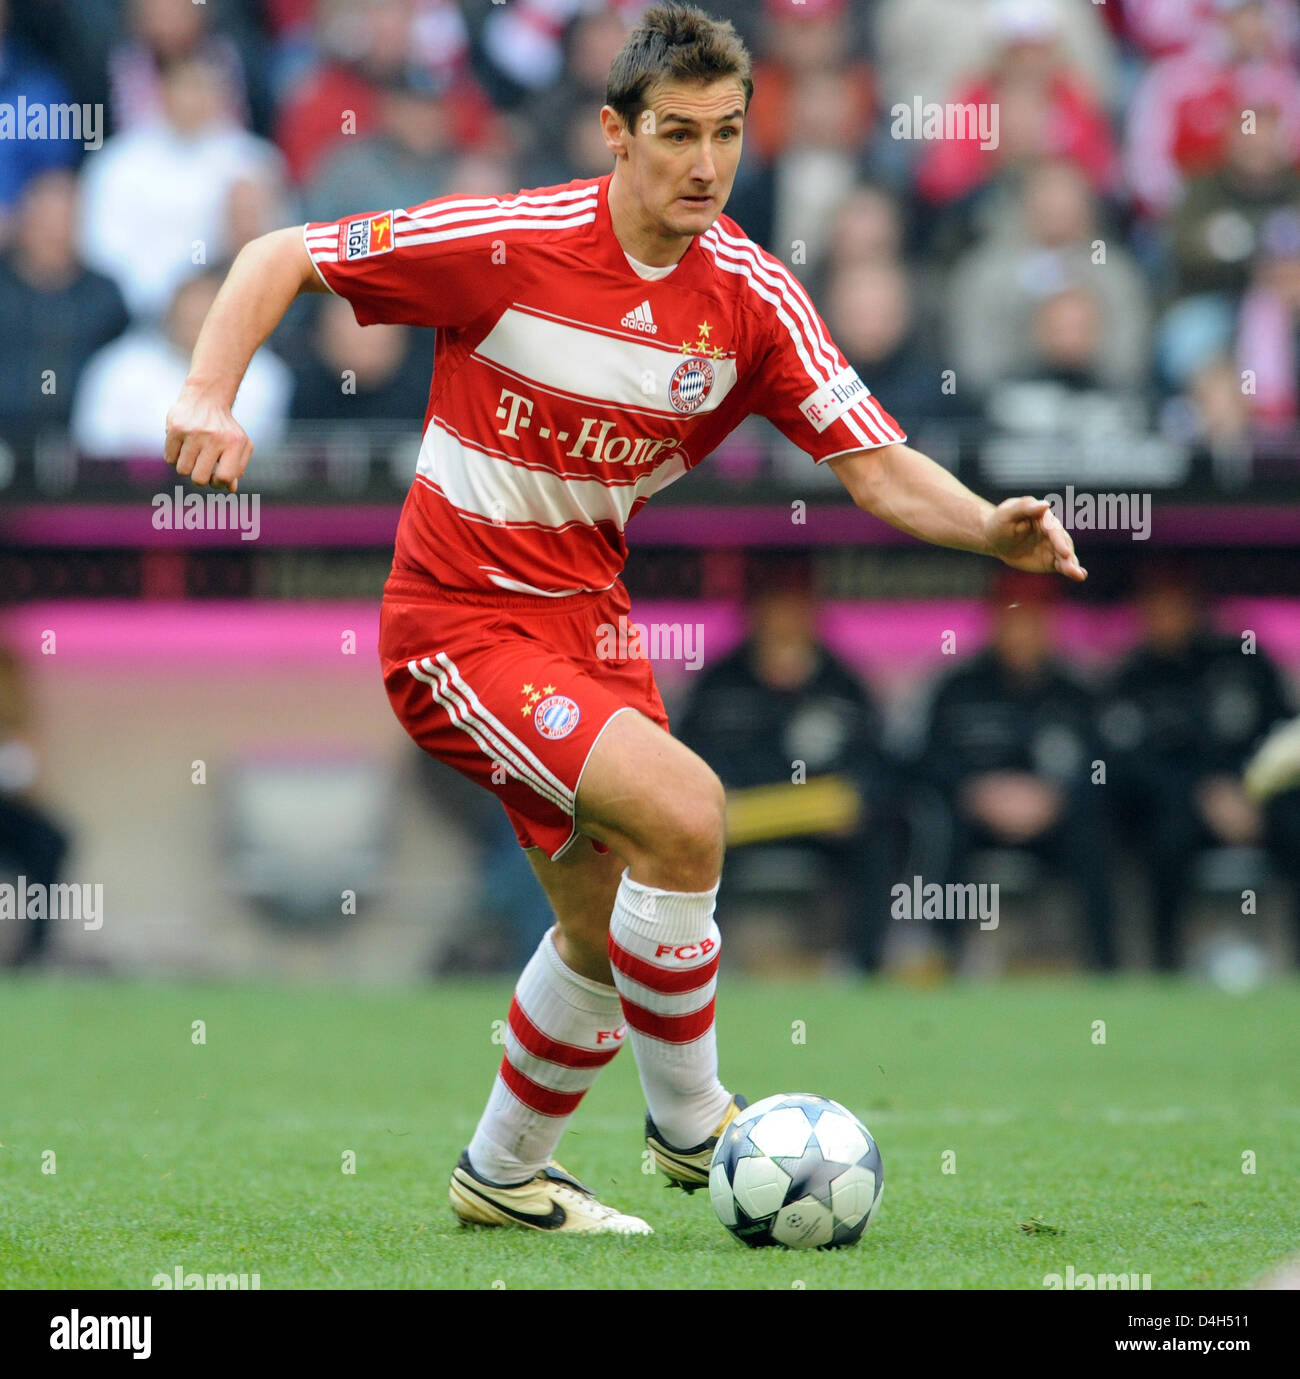 Miroslav Klose of FC Bayern Munich is shown in action during the